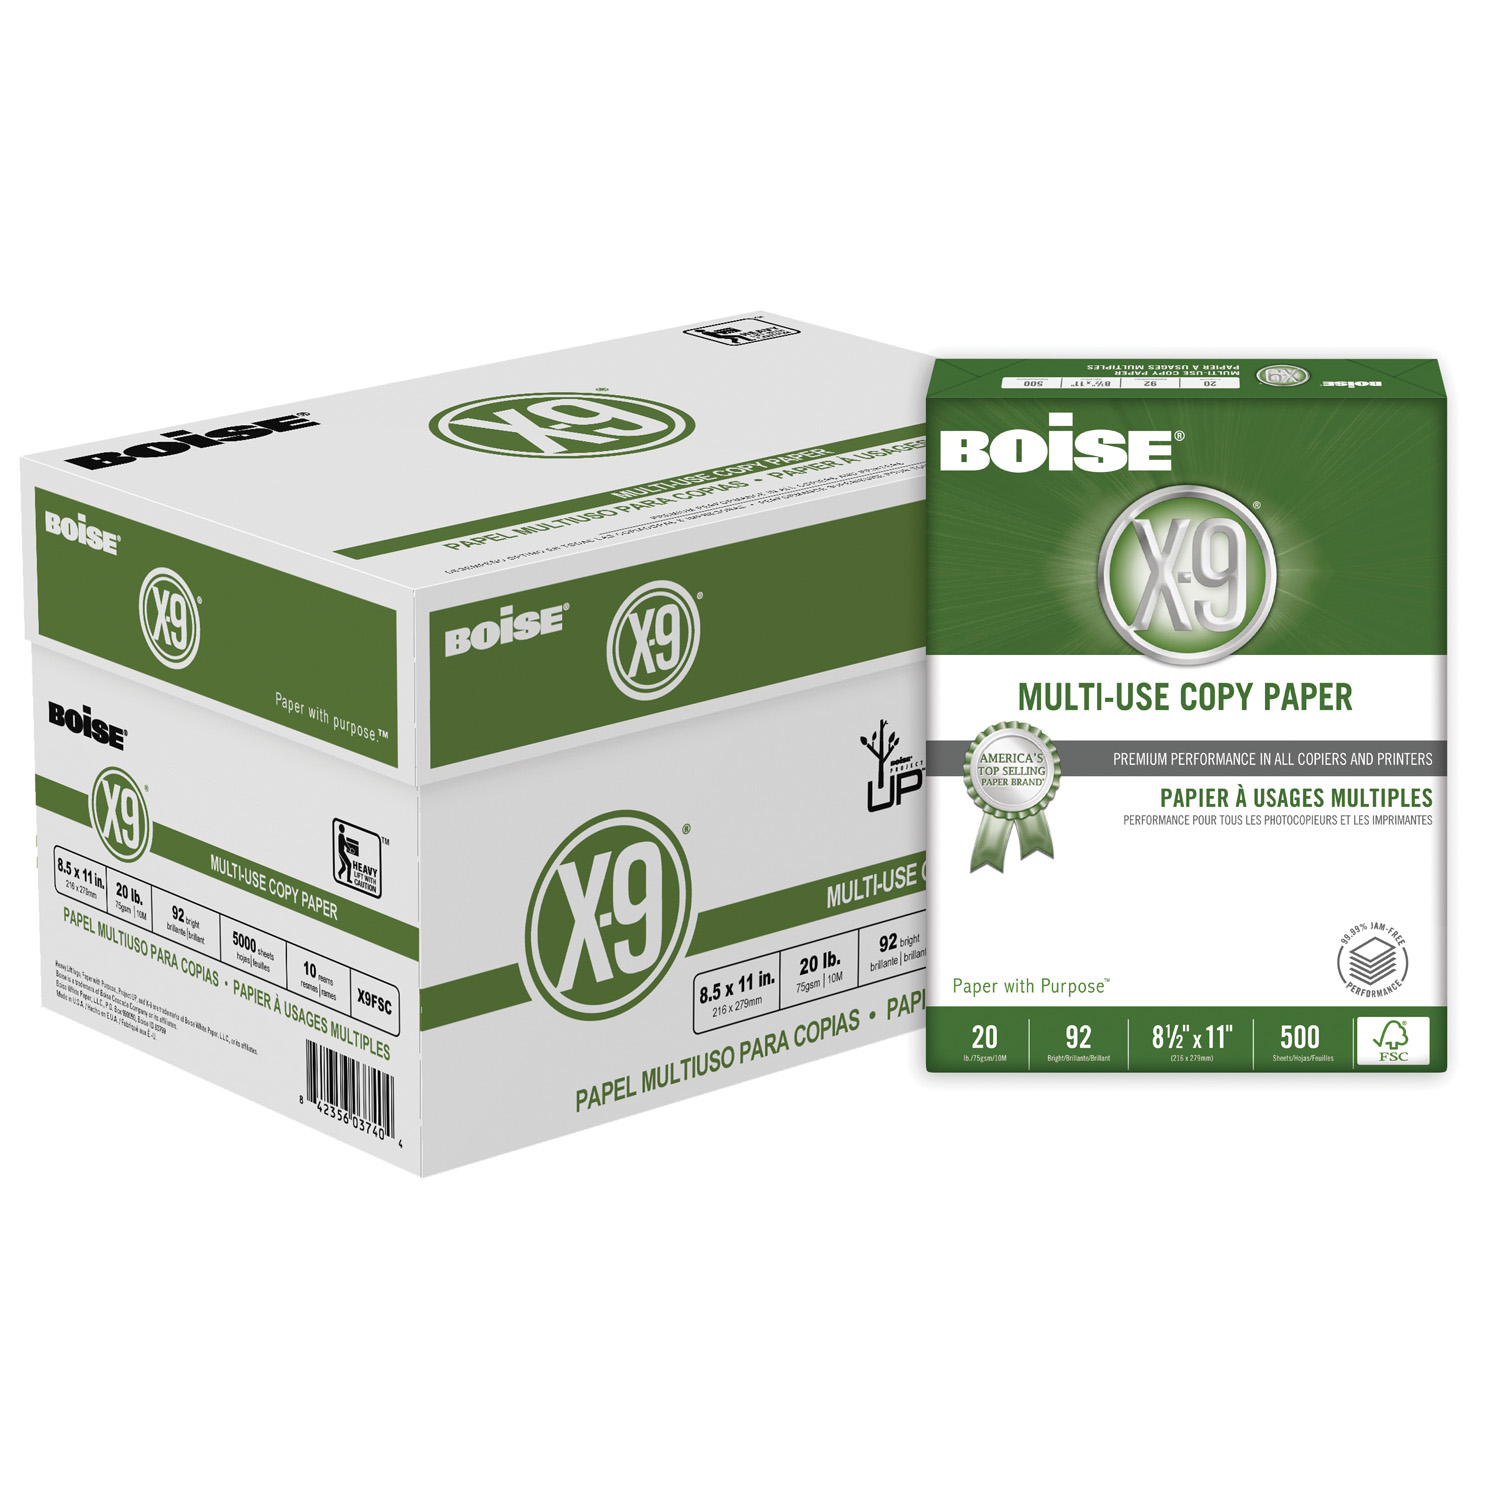 ream of paper price $2275 if ten reams of paper costs $2275, and you want to find the price of one ream of paper,  it is your duty to order office supplies for the office.